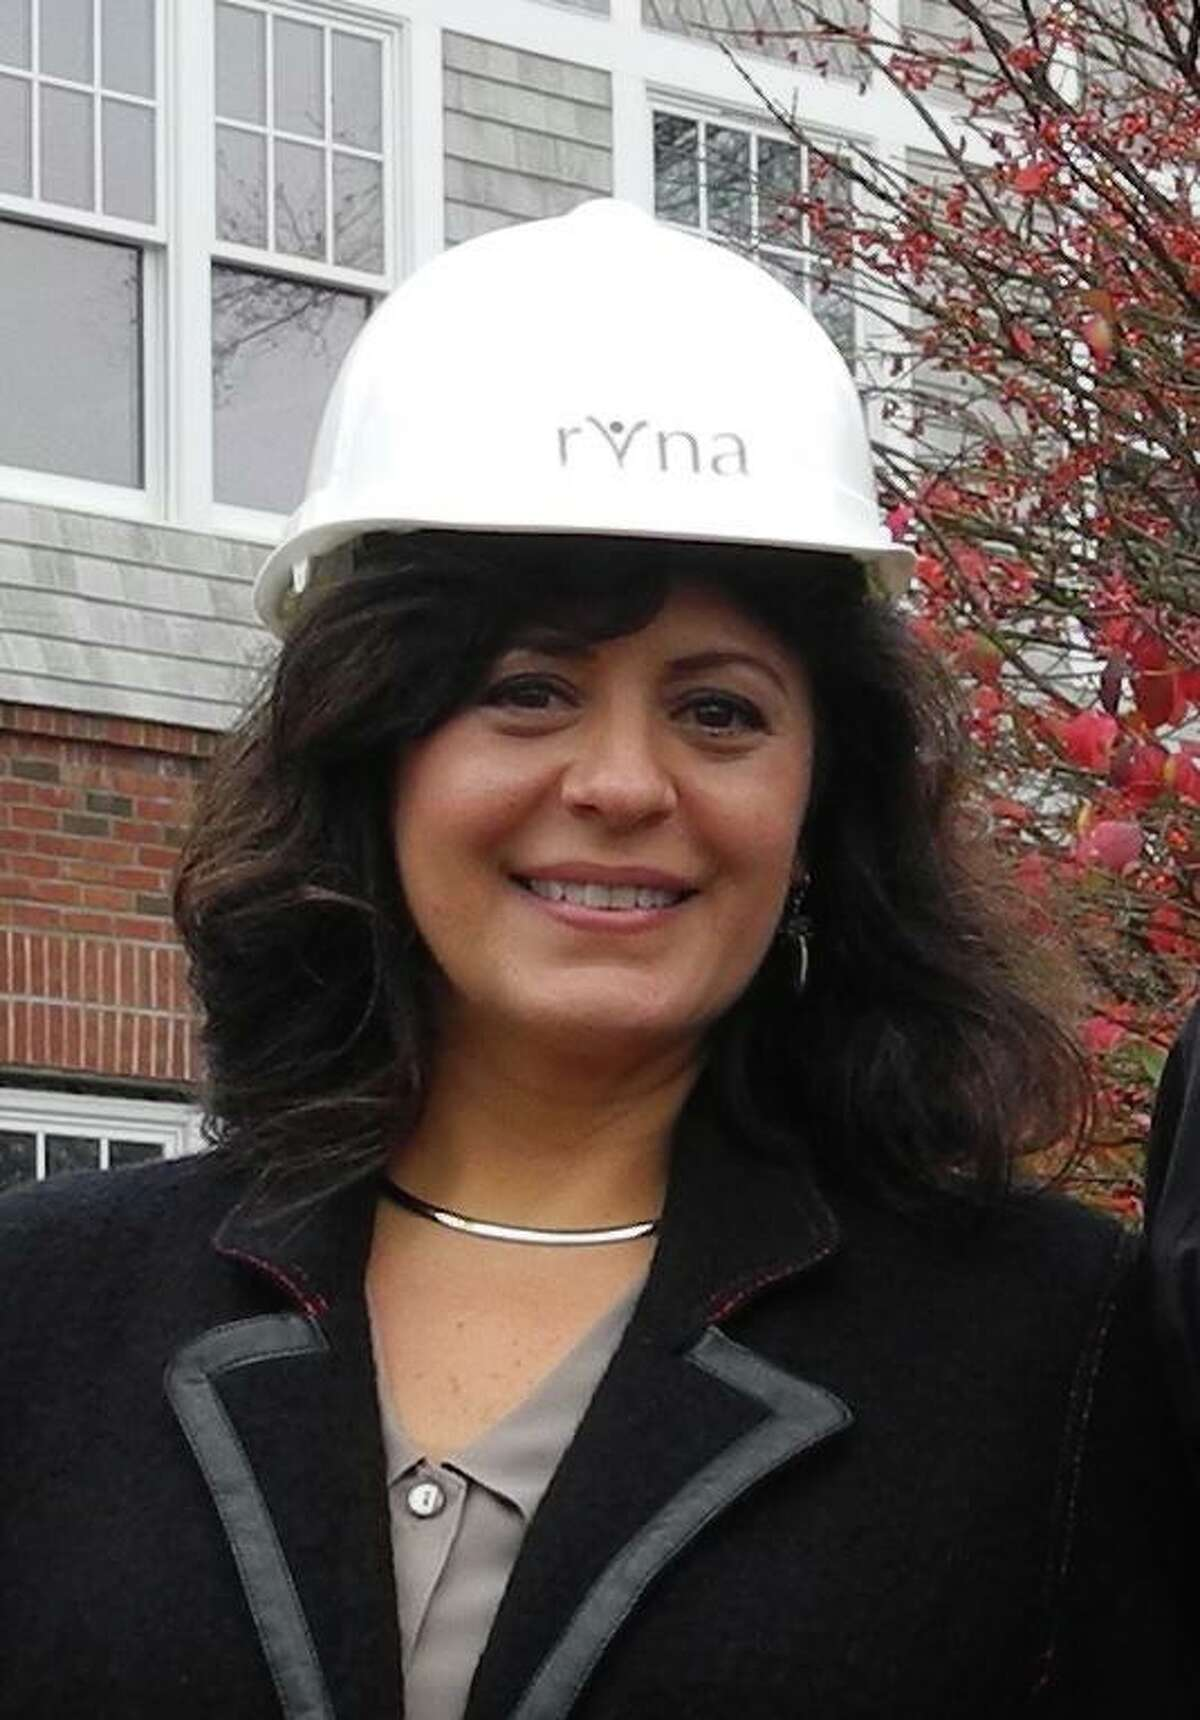 Theresa Santoro leads the RVNA, which serves 28 Connecticut towns. She donned a hard has in 2015 when giving a tour of group's headquarters, then still under-construction in Ridgefield.